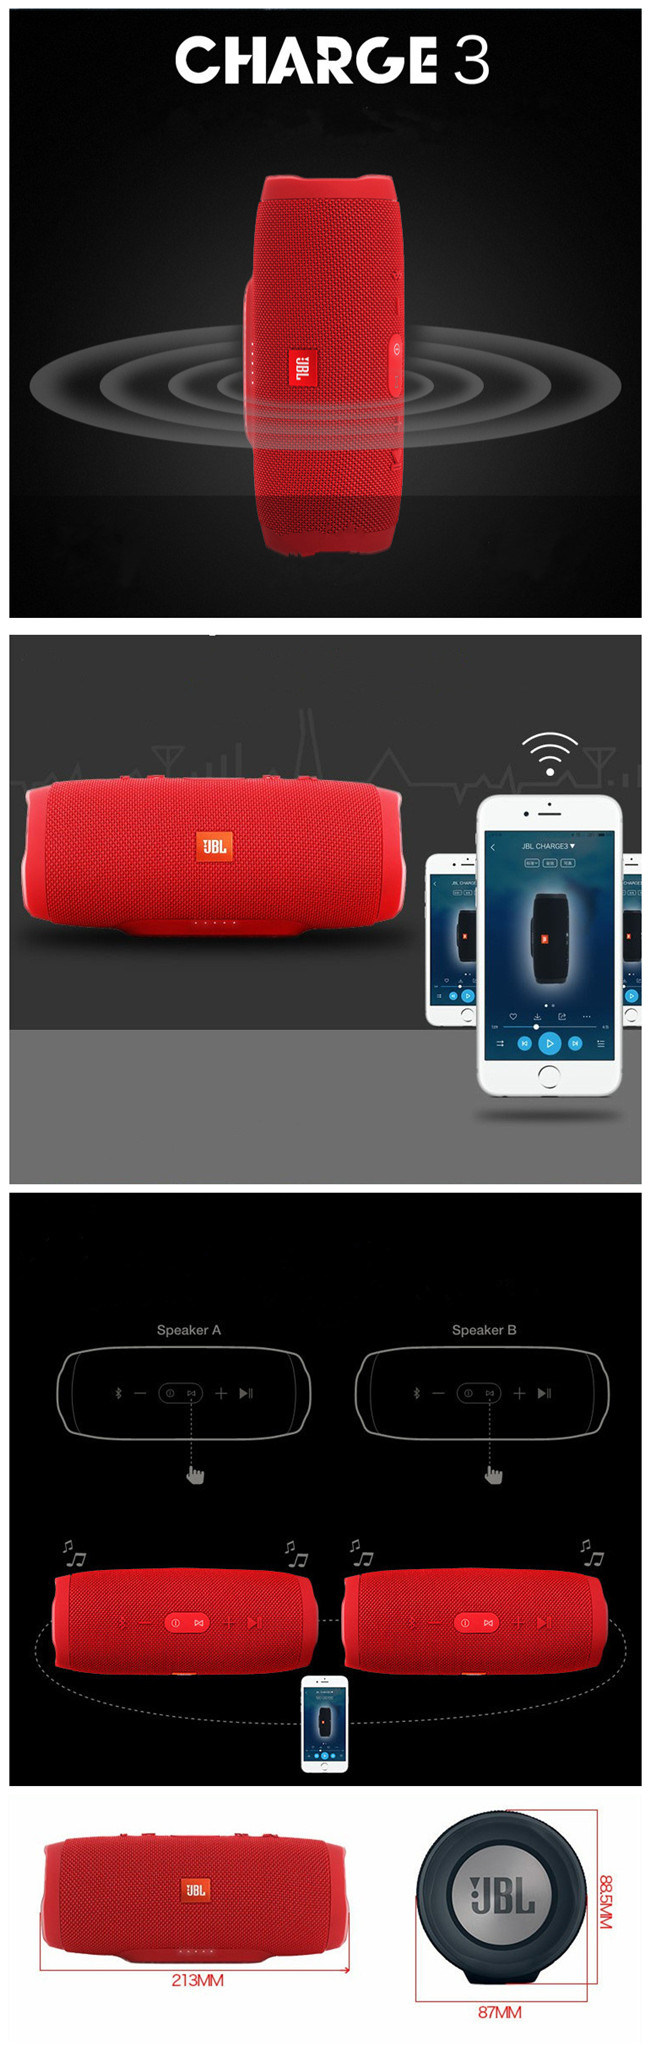 Smart Expo Portable Loud Stereo Mini Usb Bluetooth Wireless Jbl Speaker Charger 1 Bass Radiator Hear The Feel See Dual External Passive Radiators Just How Powerful Your Are